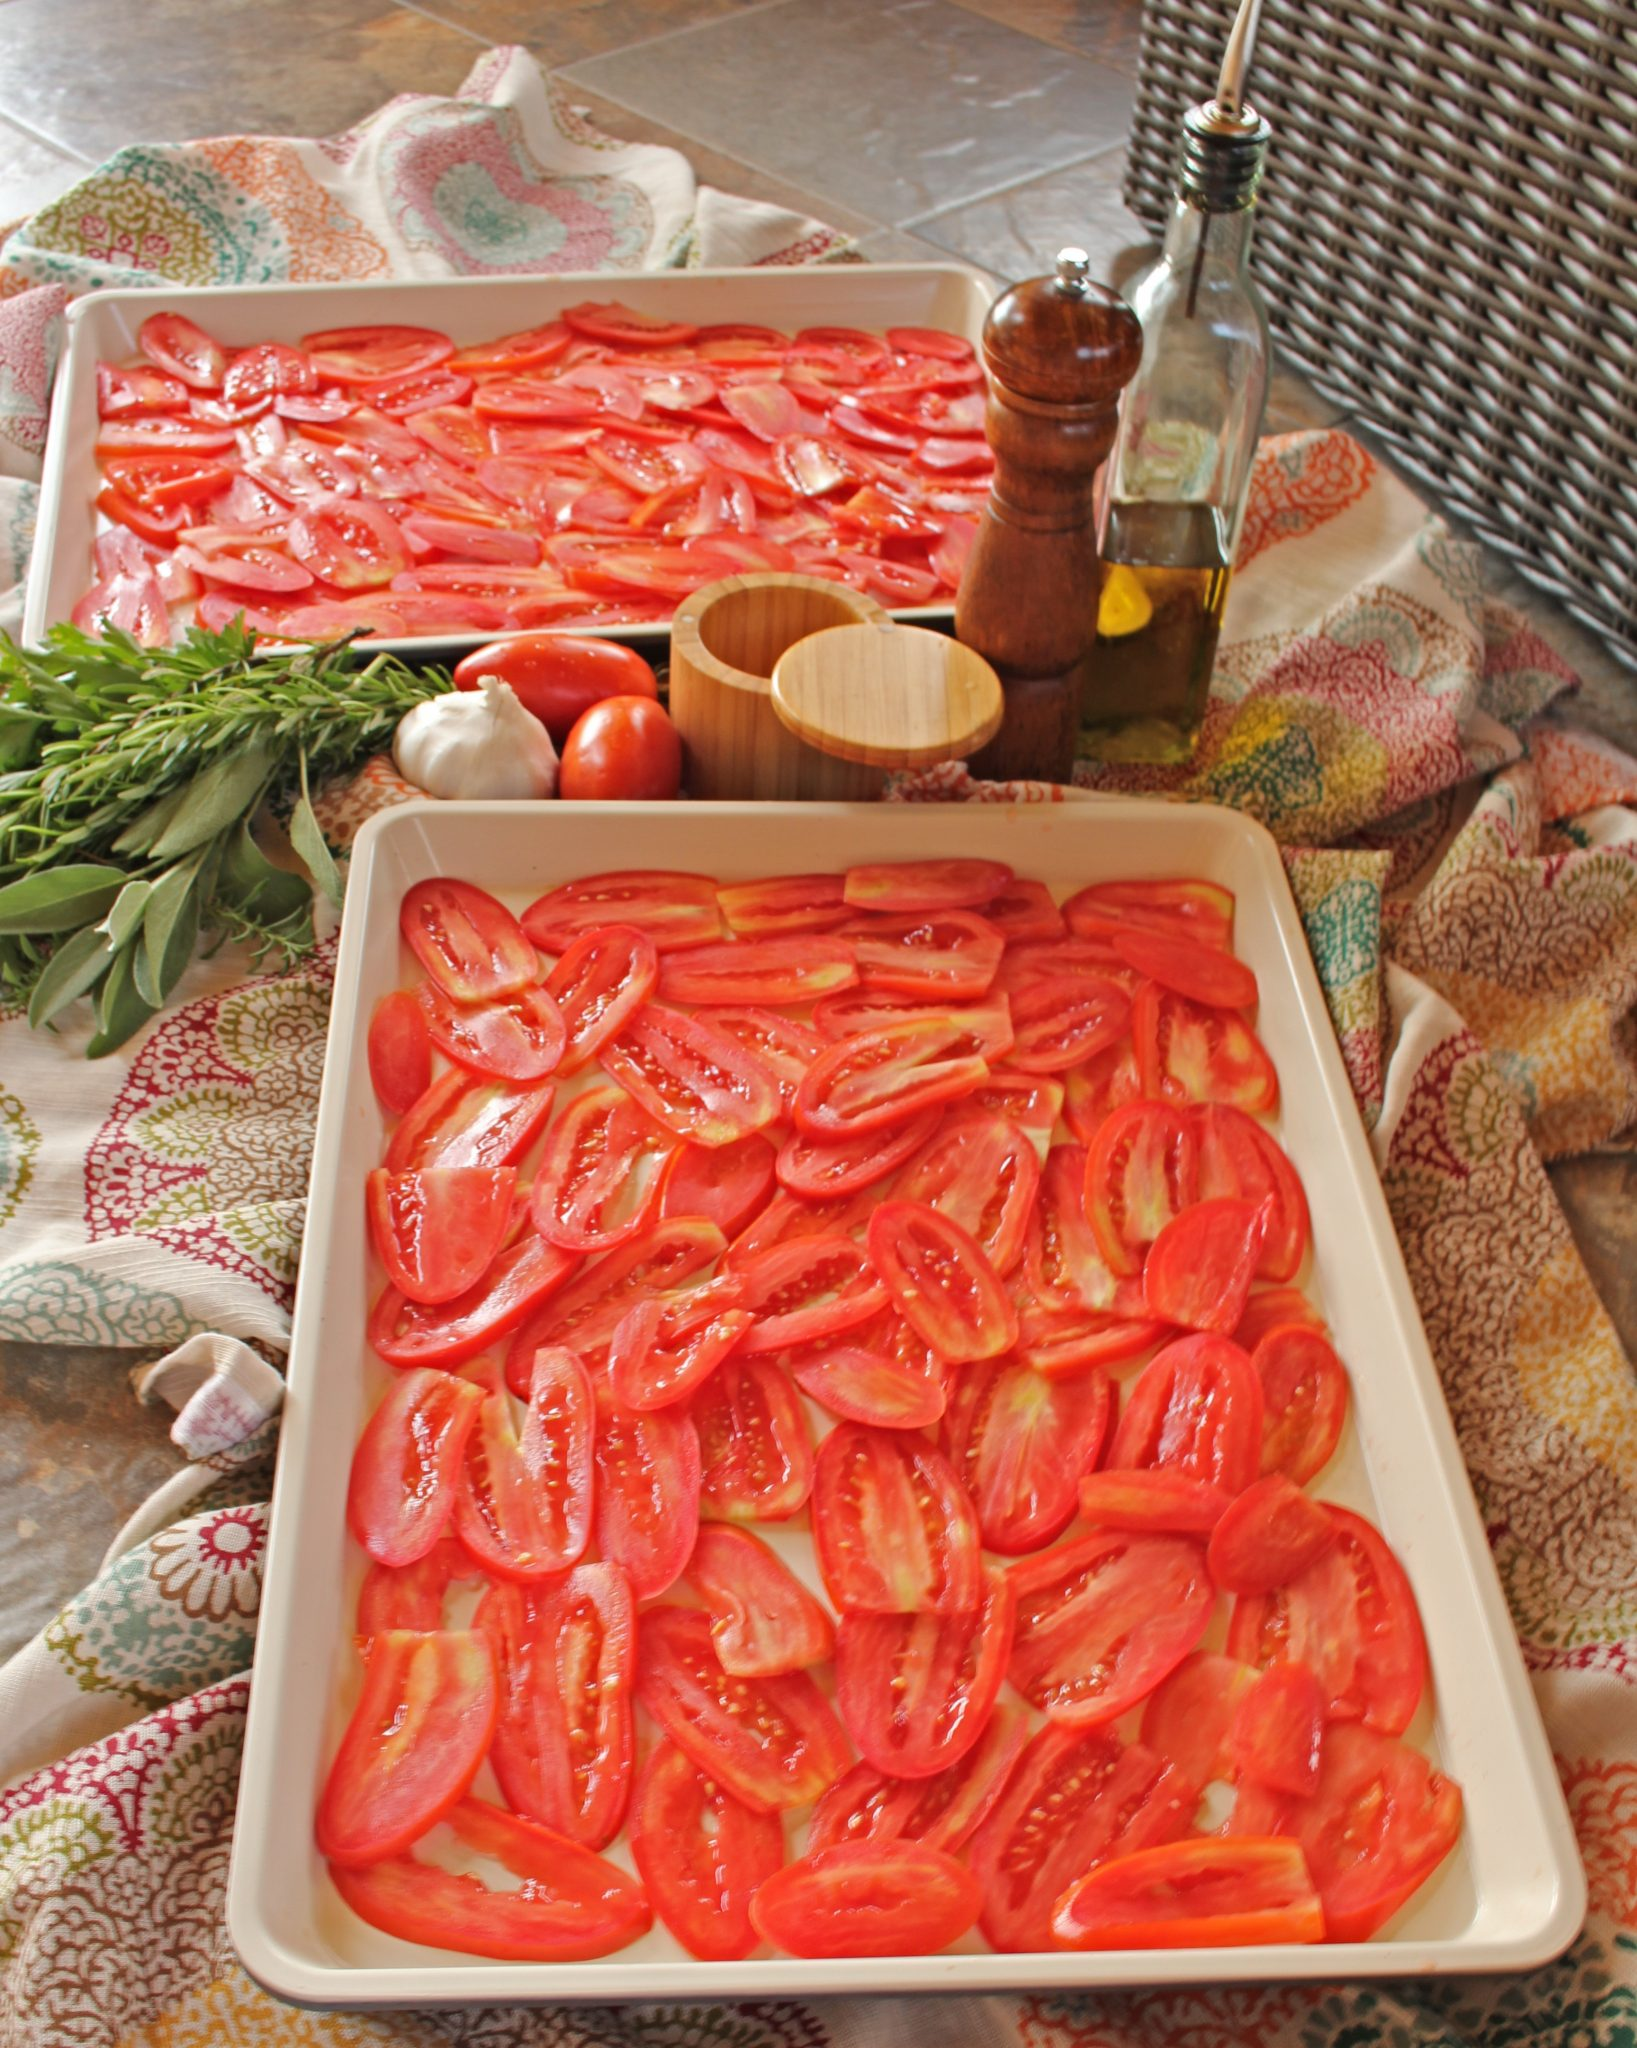 Slow-roasted tomato sauce: sliced tomatoes in pans, ready to go into the oven with herbs, salt and pepper, garlic, and olive oil. #italianfood #marinarasauce #gardentomatosauce #tomatosauce #flippedoutfood #pastasauce via @FlippedOutFood